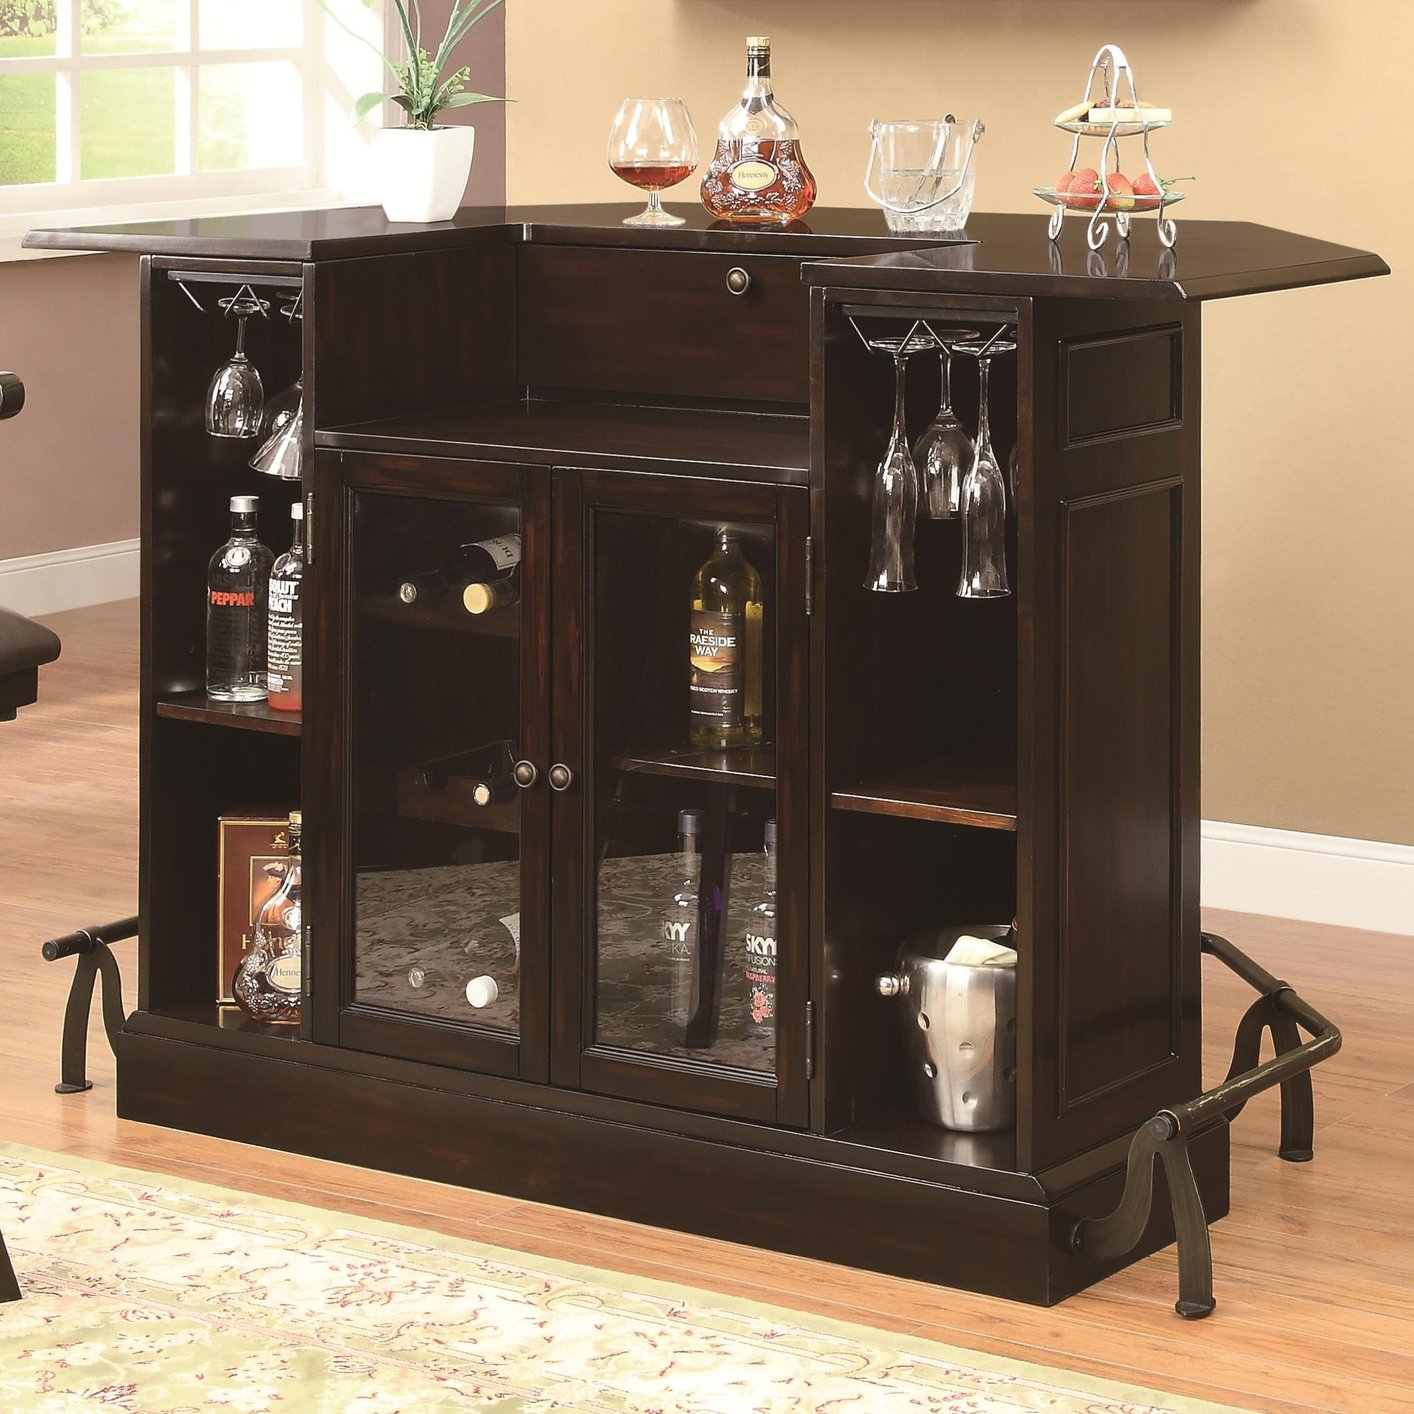 Brown Glass Bar Unit - Steal-A-Sofa Furniture Outlet Los Angeles CA